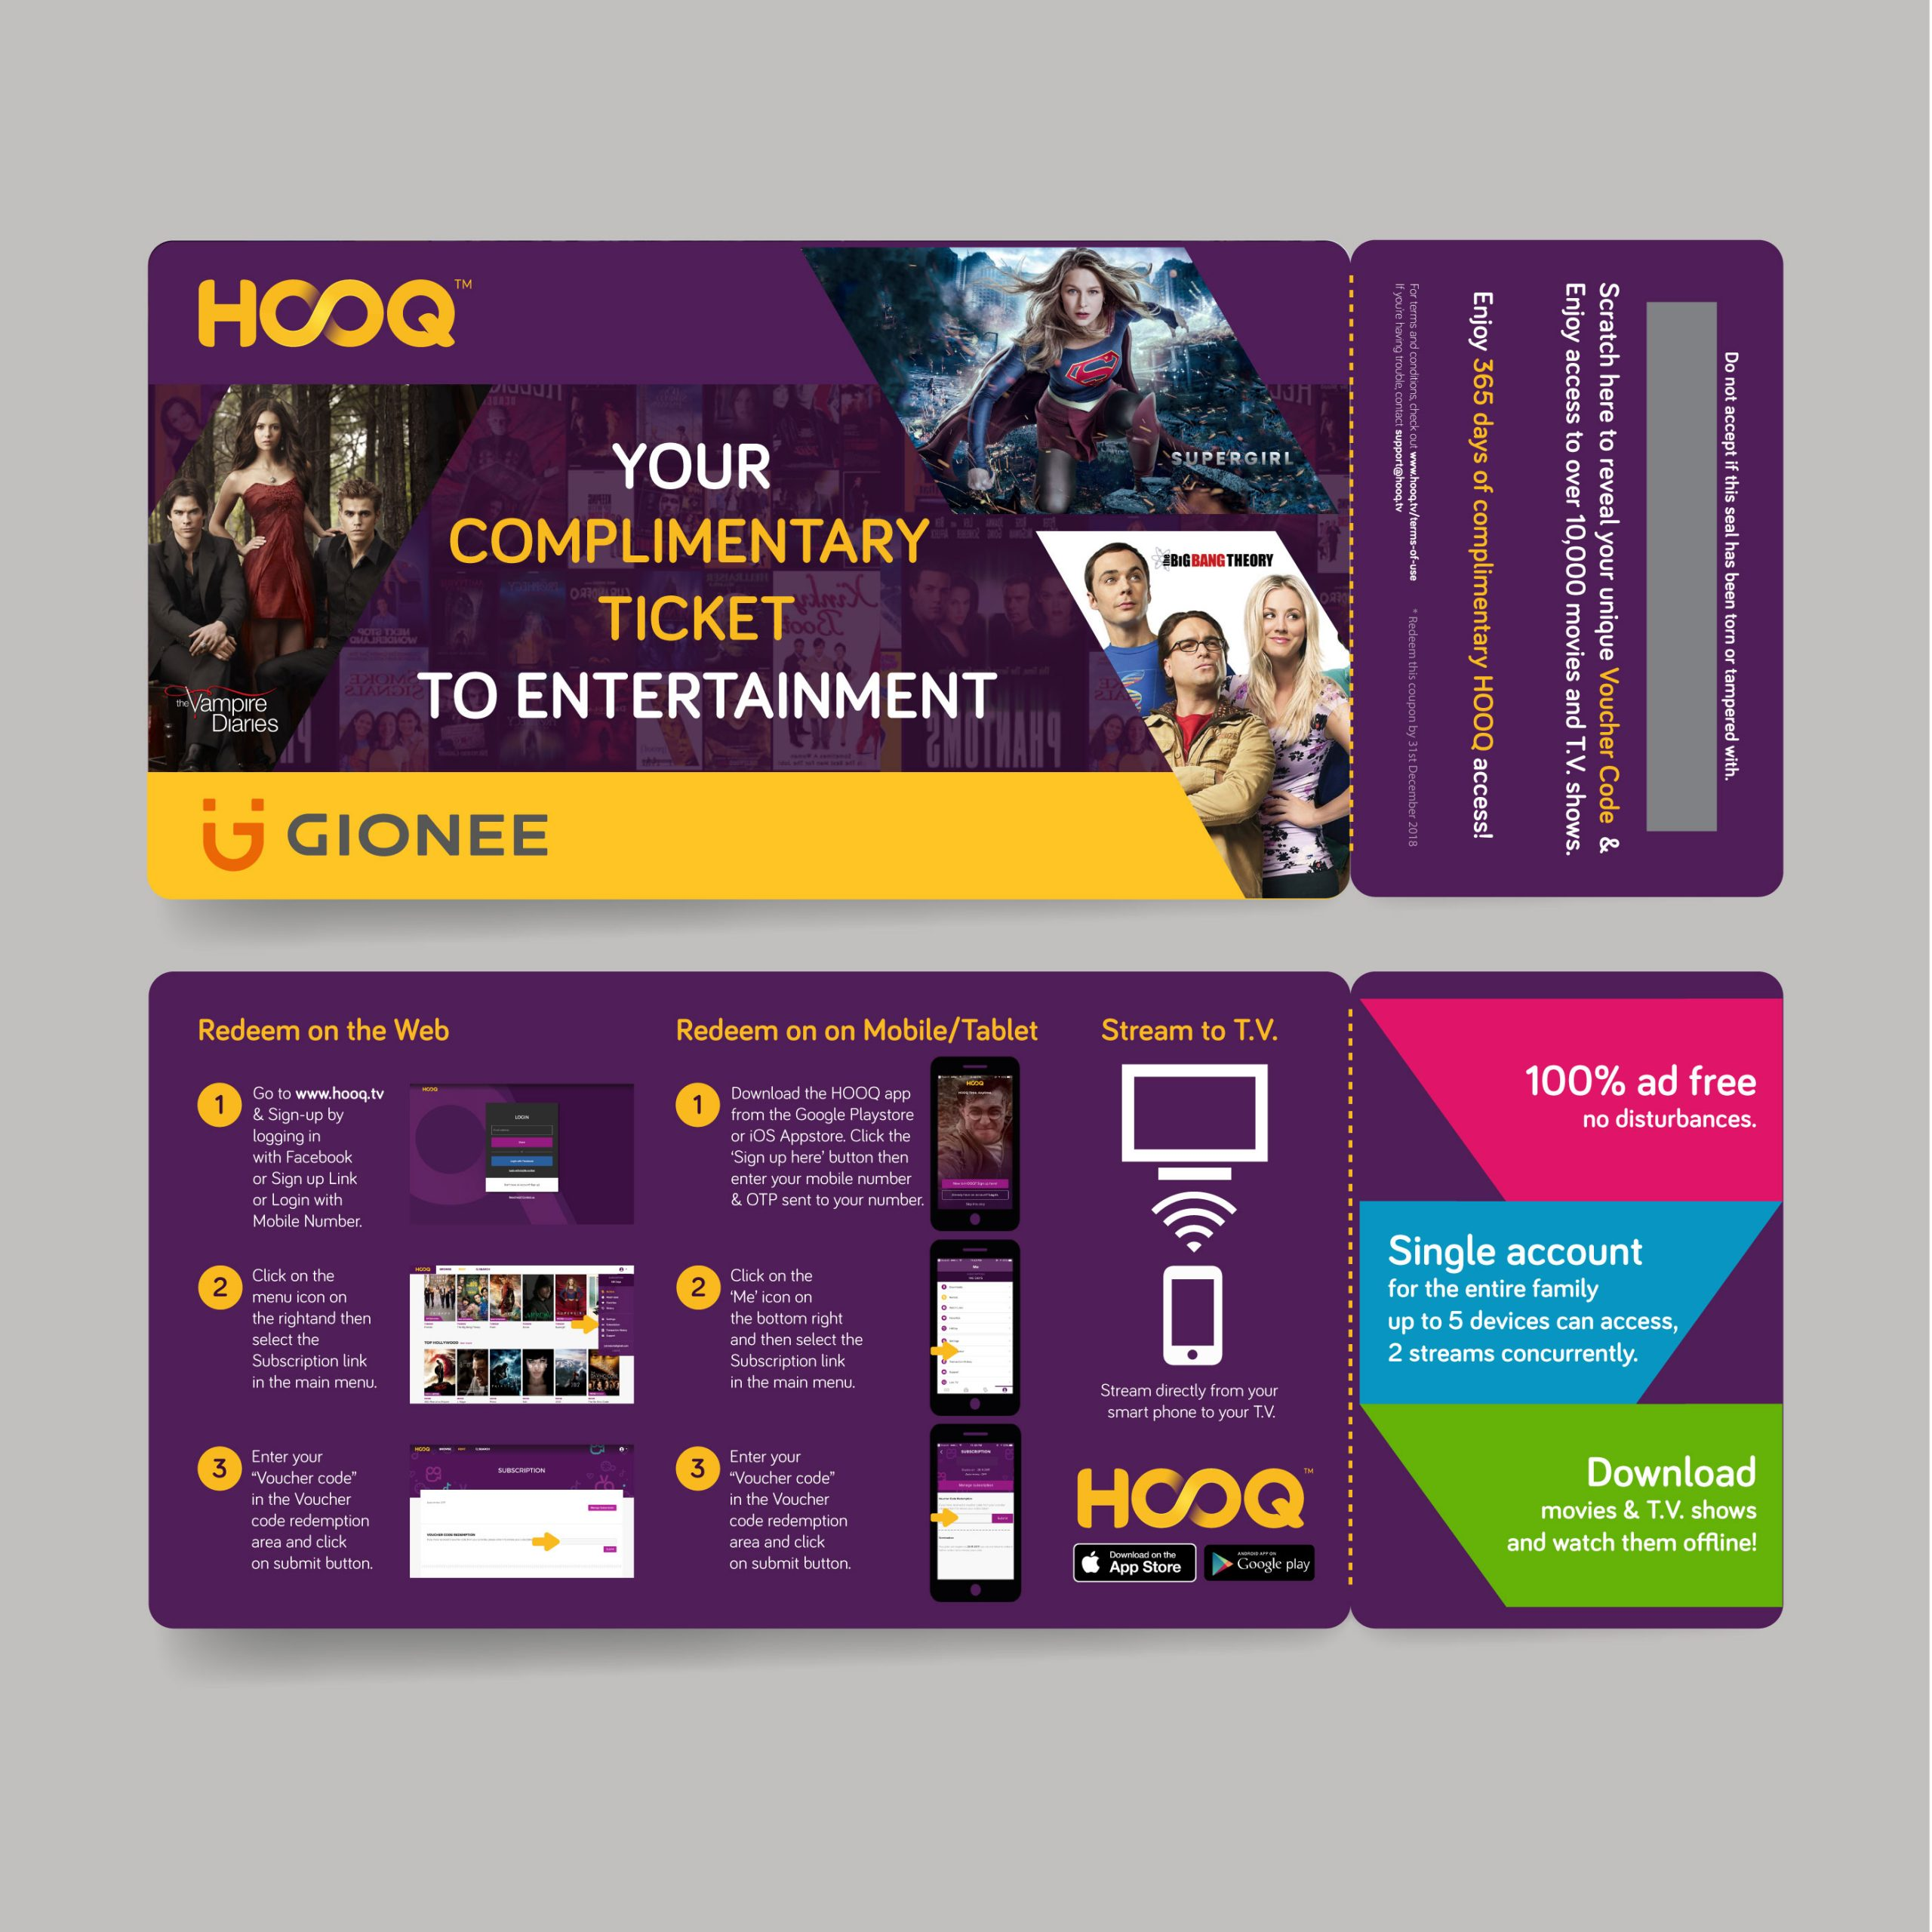 hooq_ticket_Gionee